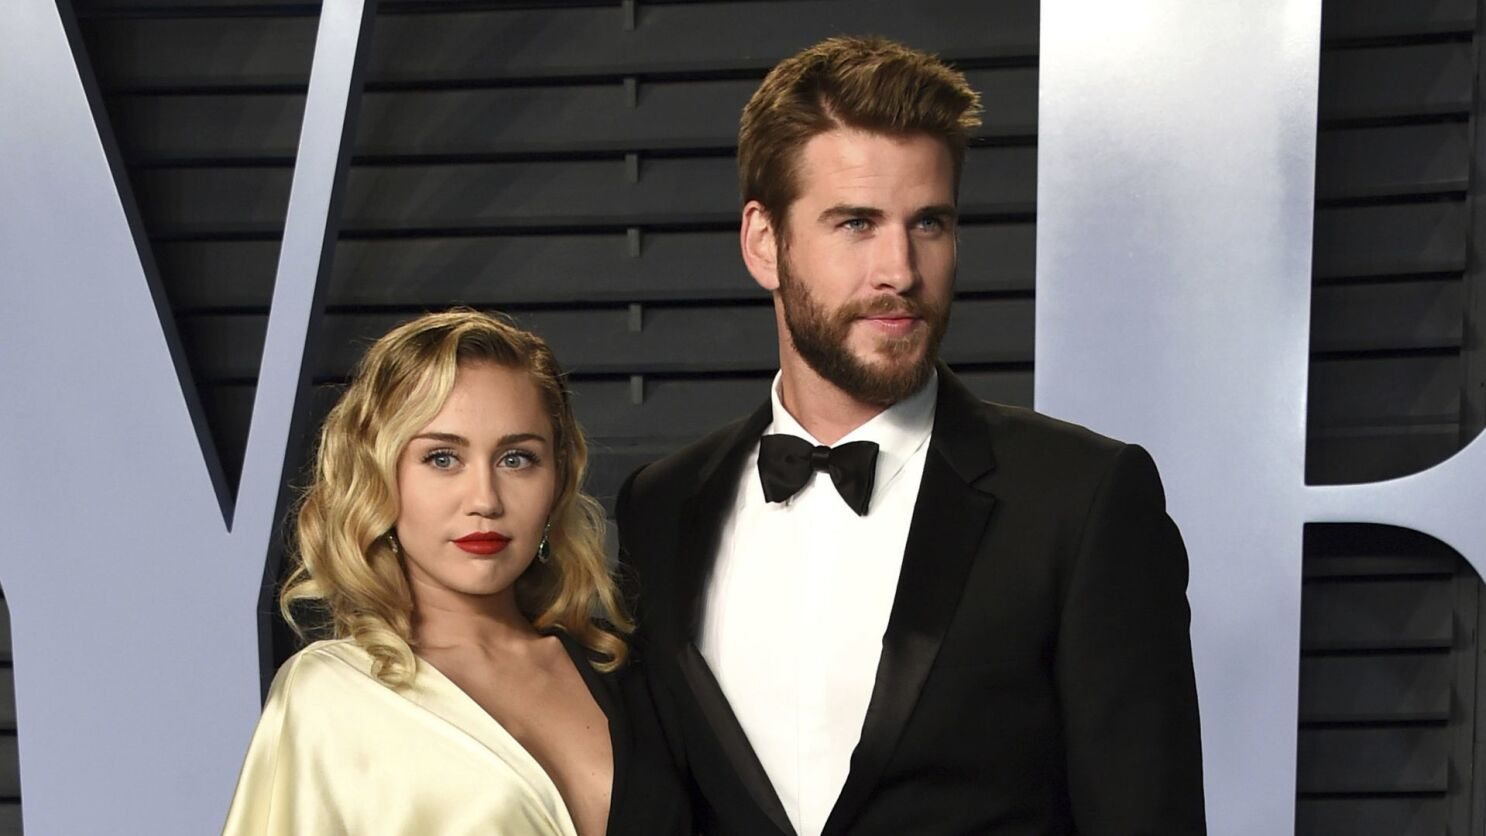 Here's the latest in Miley Cyrus' split from Liam Hemsworth